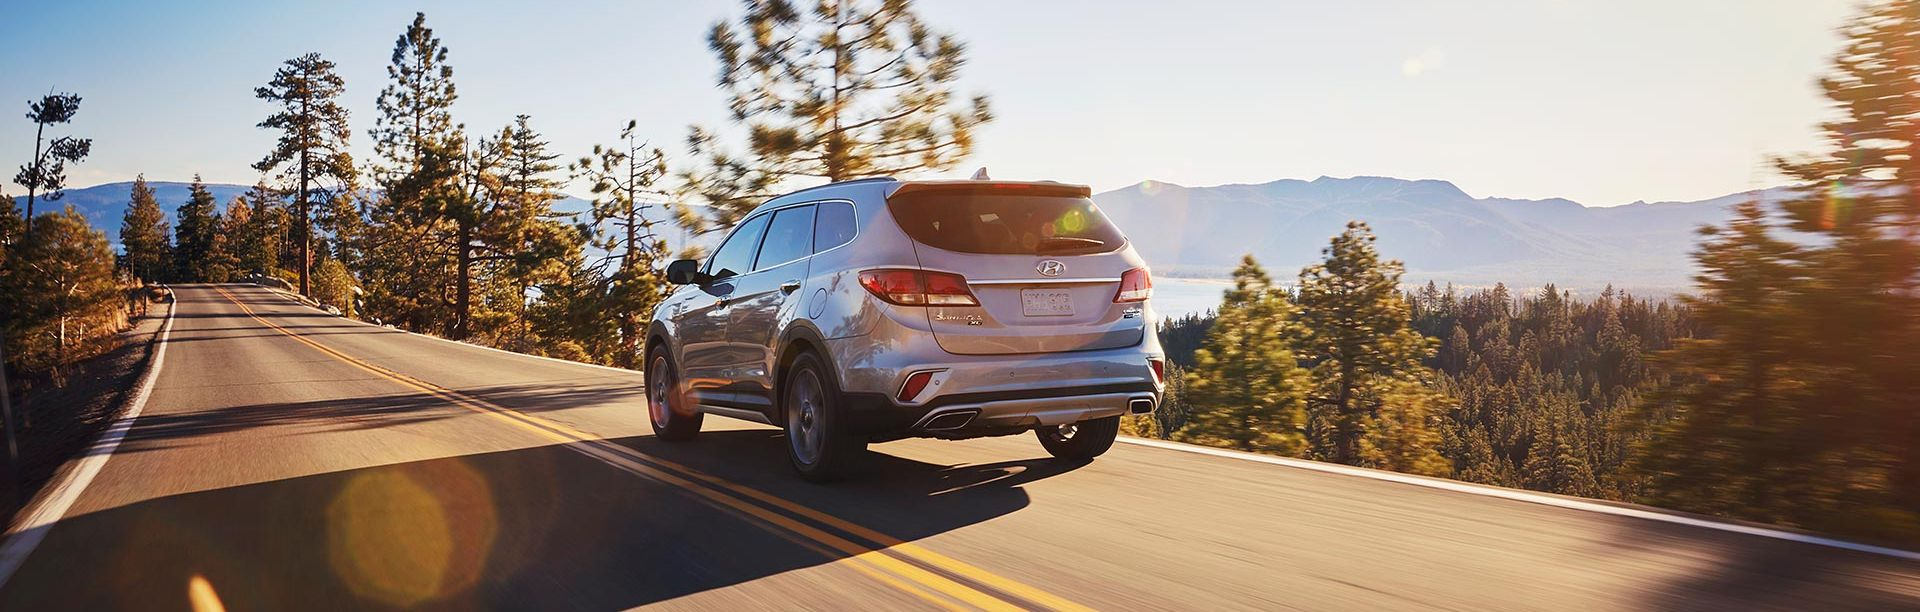 2019 Hyundai Santa Fe XL Leasing near Washington, DC